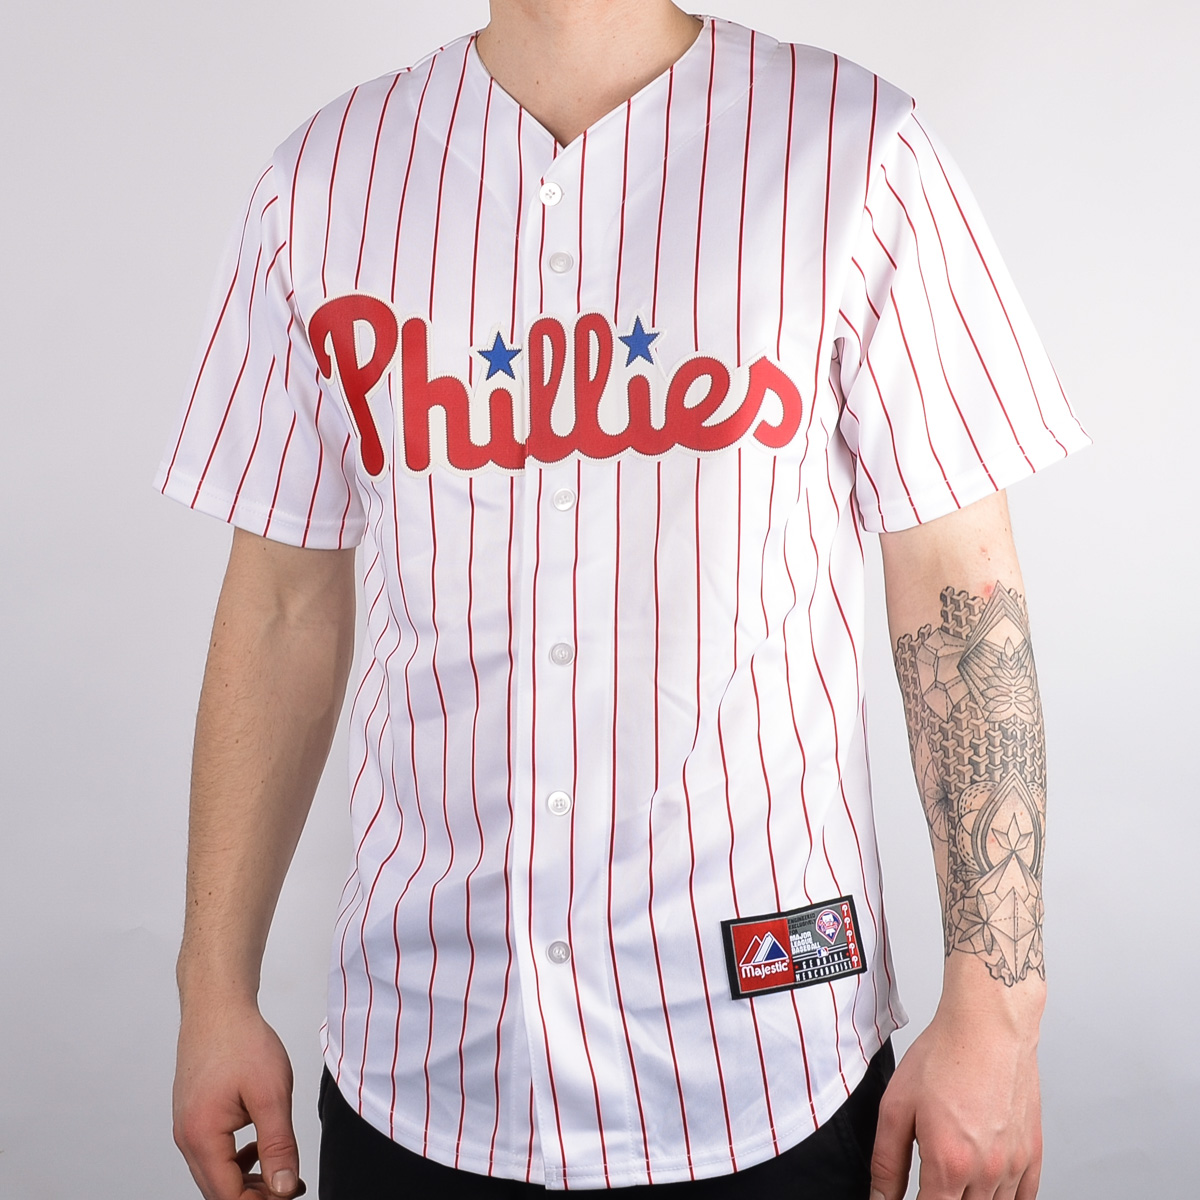 a52778c0240 Majestic MLB Philadelphia Phillies Replica Baseball Jersey - MLB NFL NHL  SHOP MLB Merchandise - Superfanas.lt